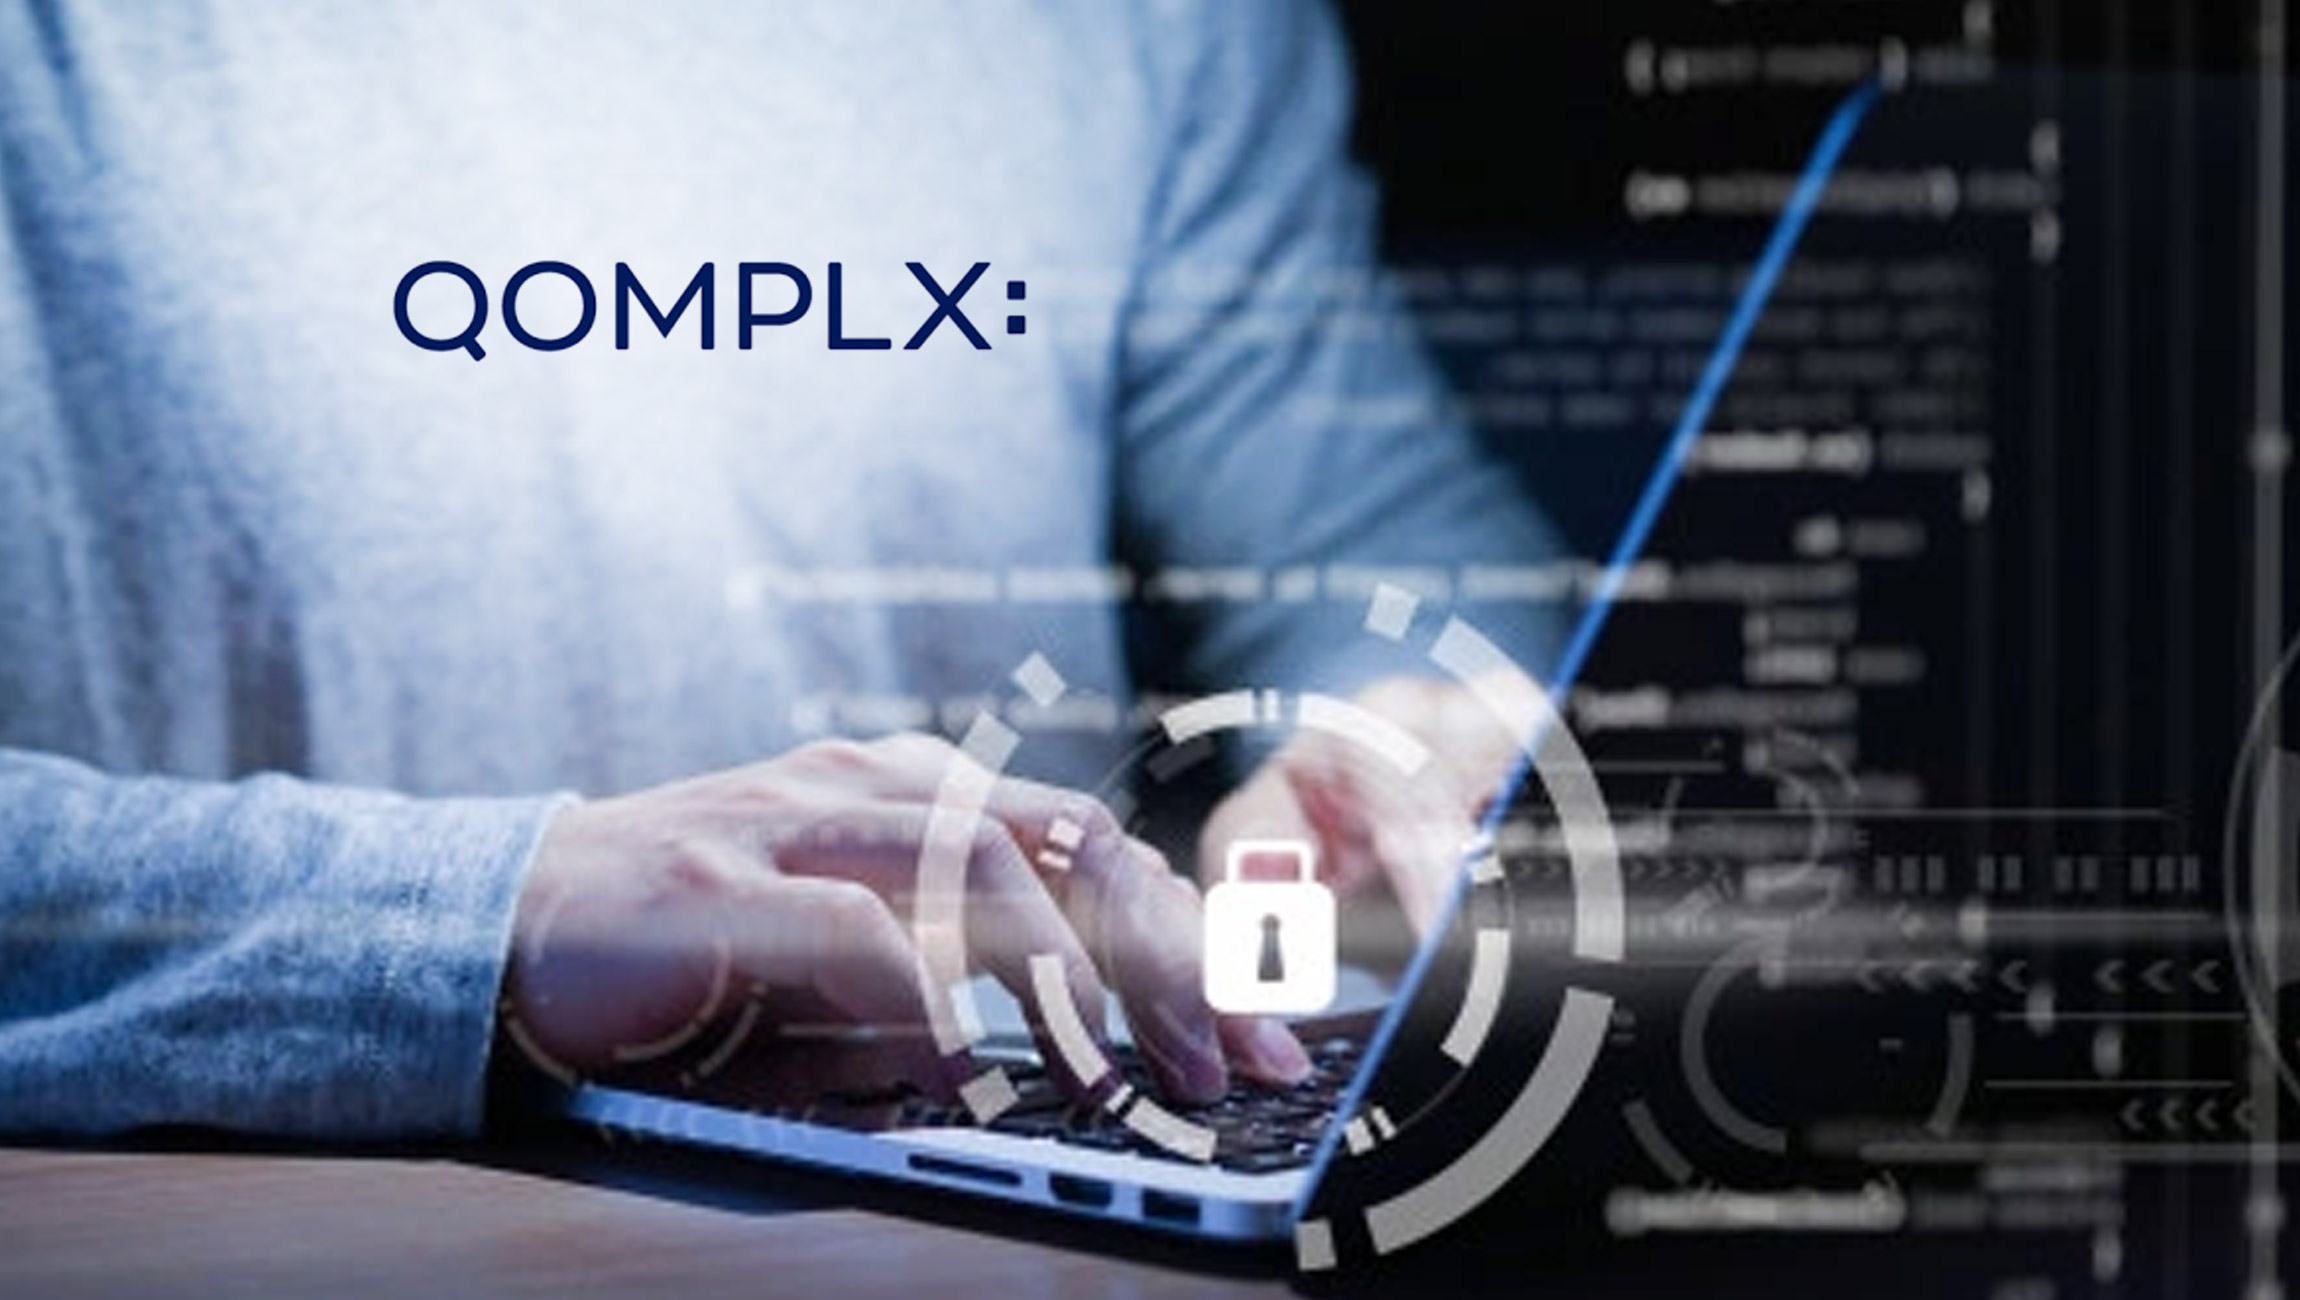 FBI Assistant Director Brian Hale Transitions to QOMPLX to Tackle Global Cyber and Critical Risk Challenges